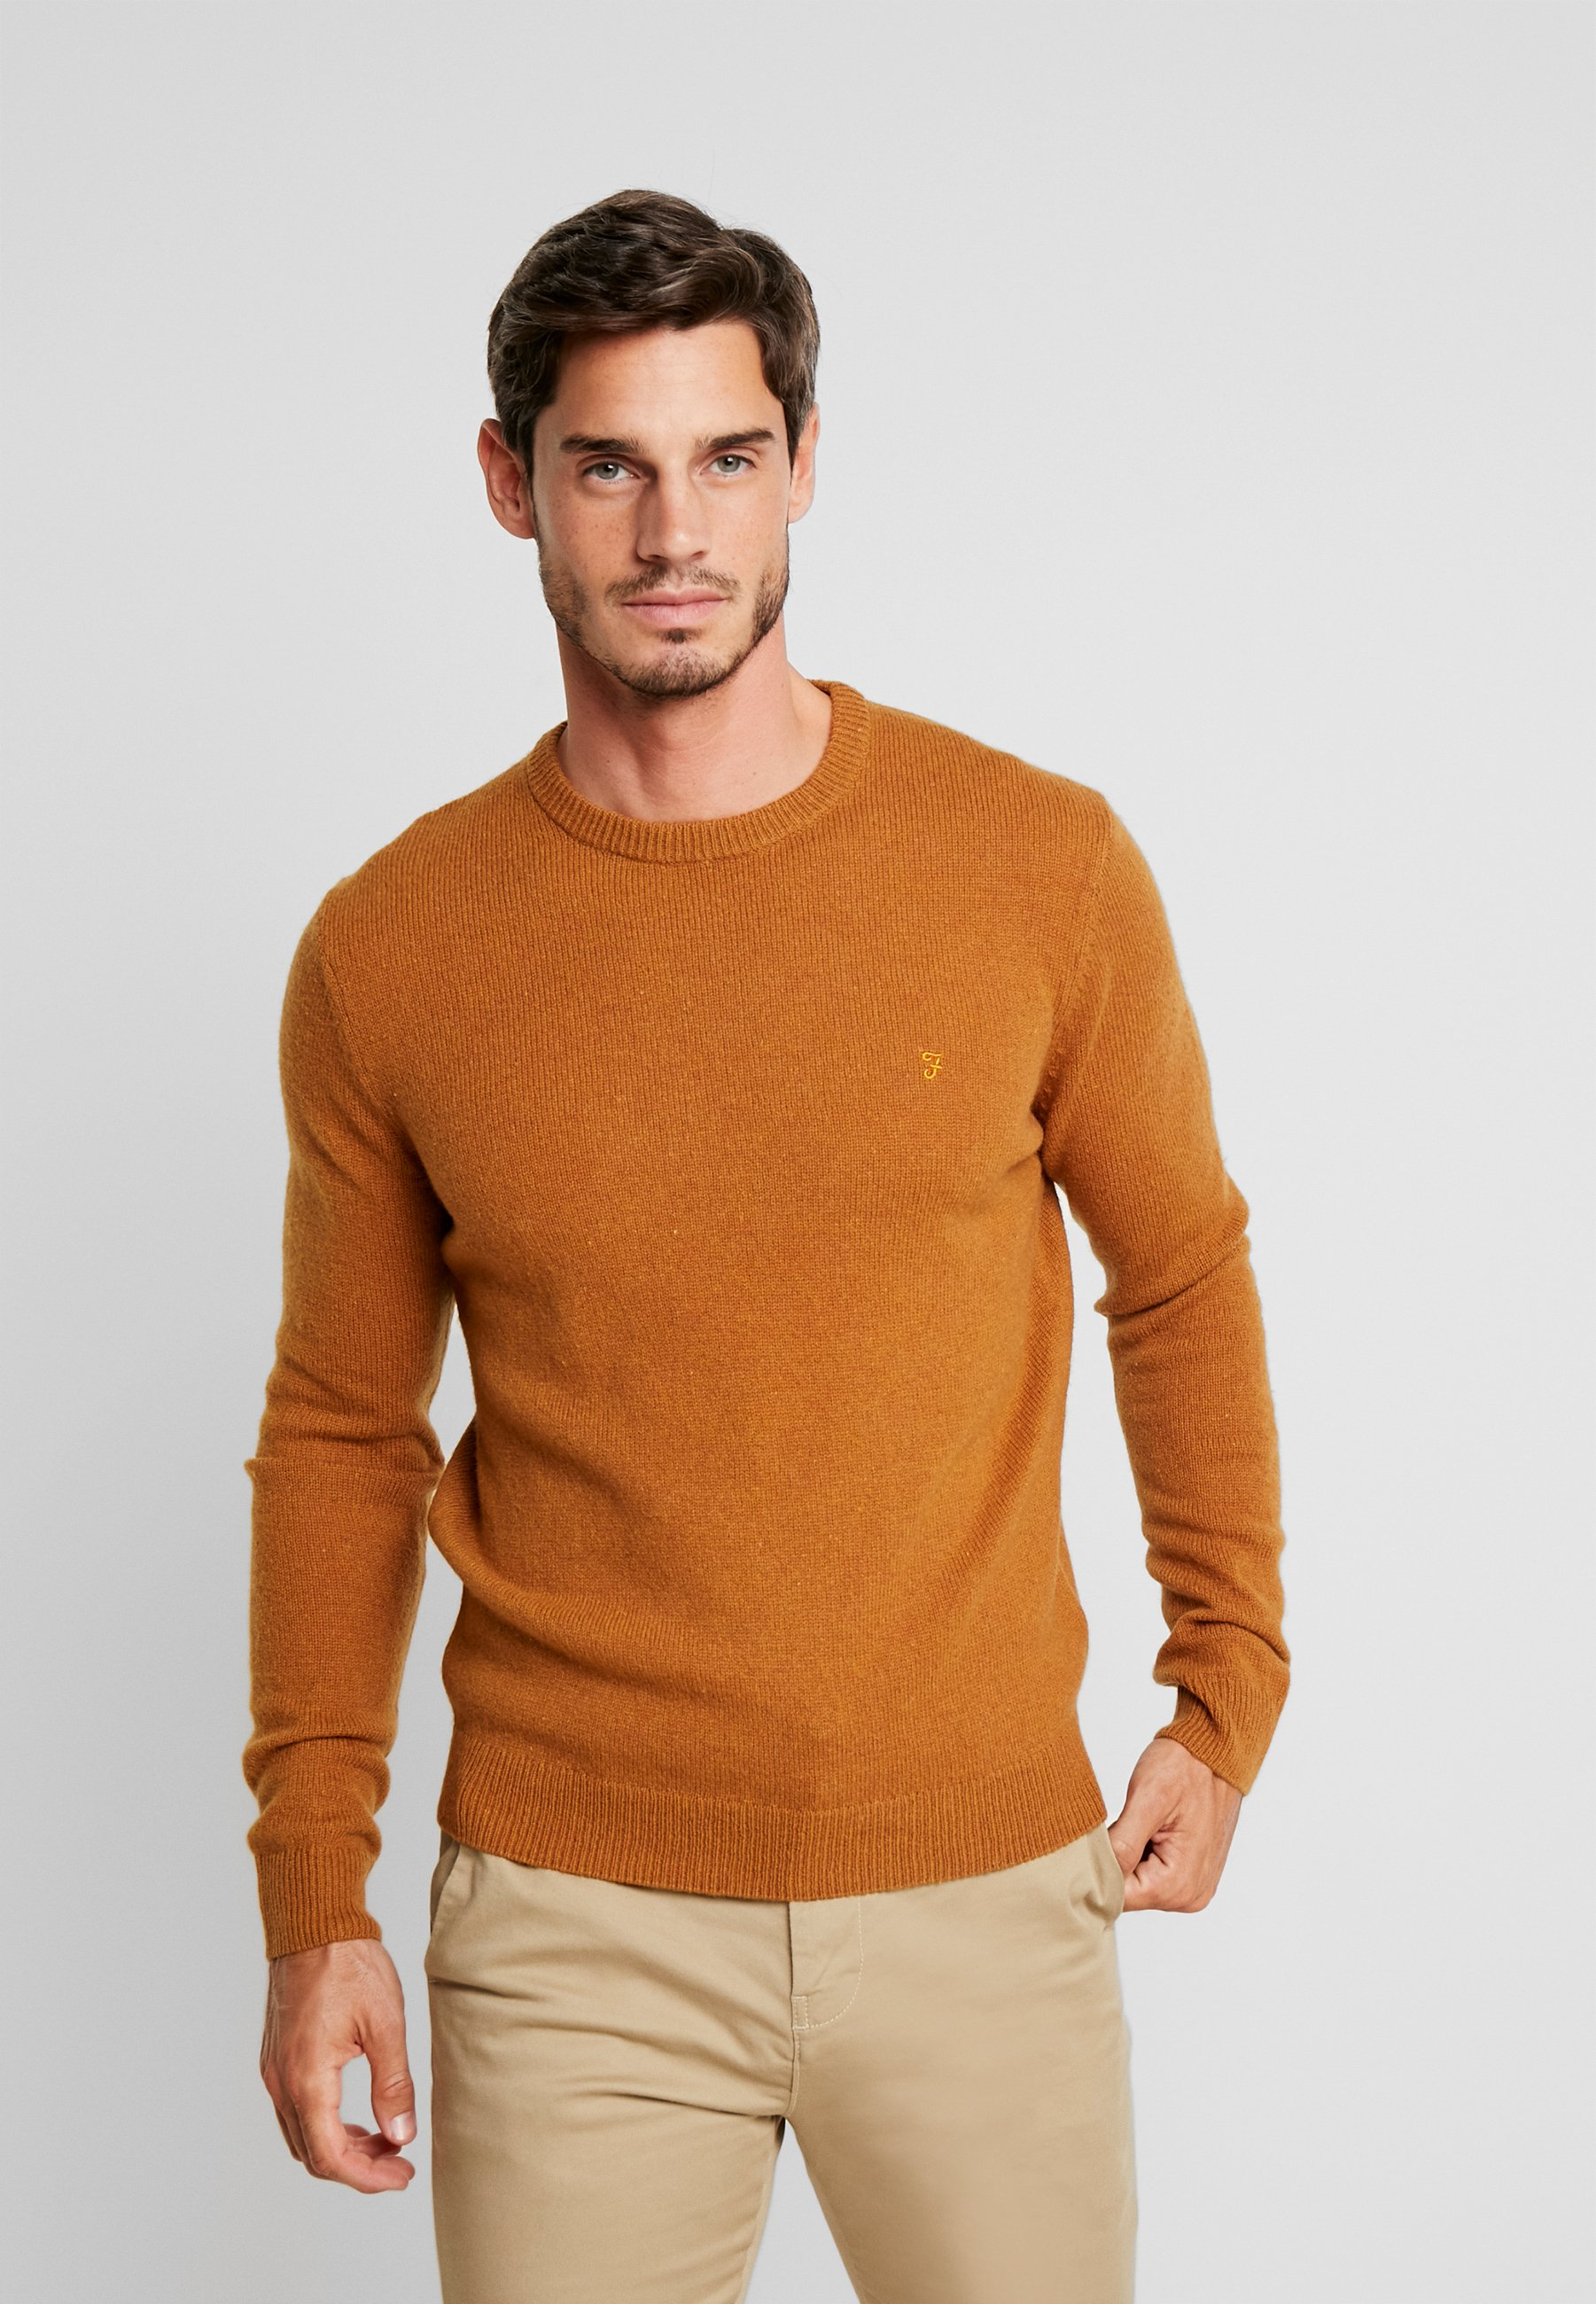 Crew NeckPullover Rosecroft Farah The Brown Spanish 54jqA3RL